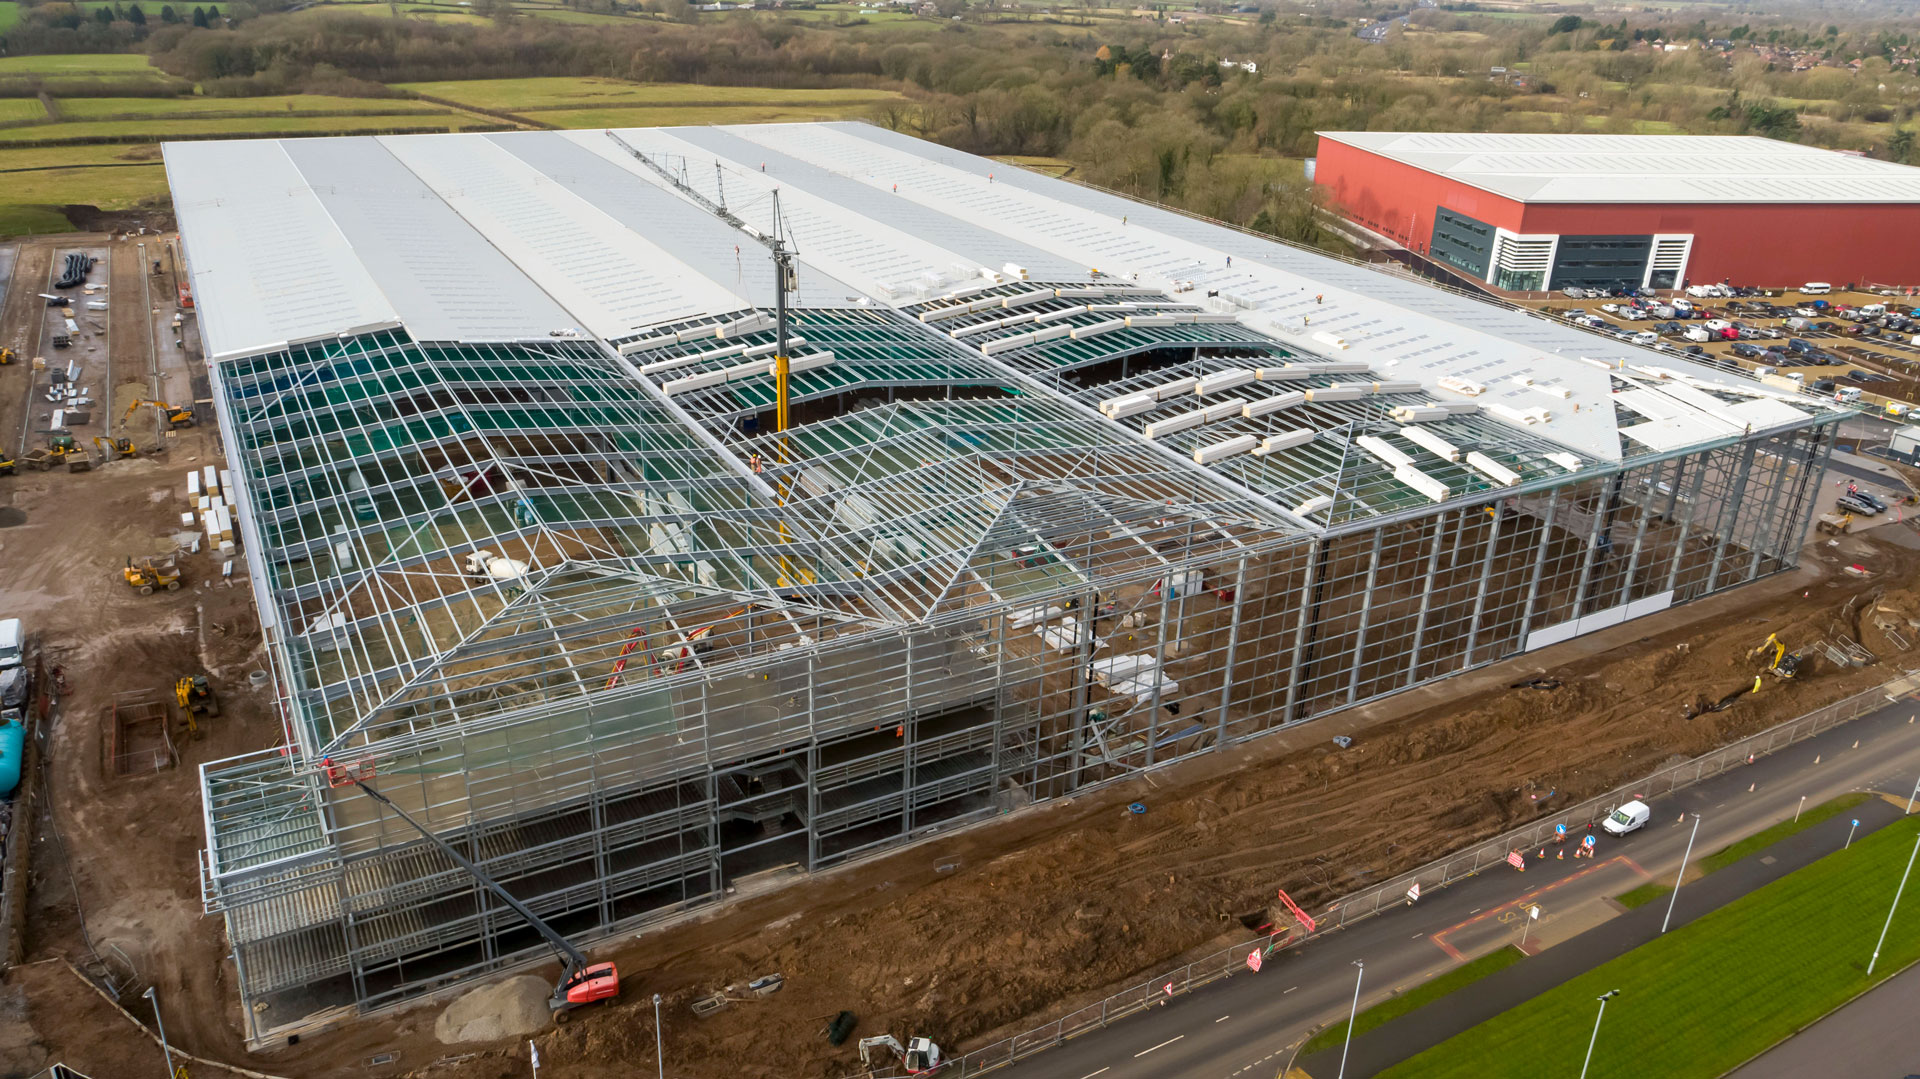 West Siphonics Systems England Scotland Siphonic Roof Drainage Specialists Design Manufacture Installation Project Management ICON 2 Manchester Airport